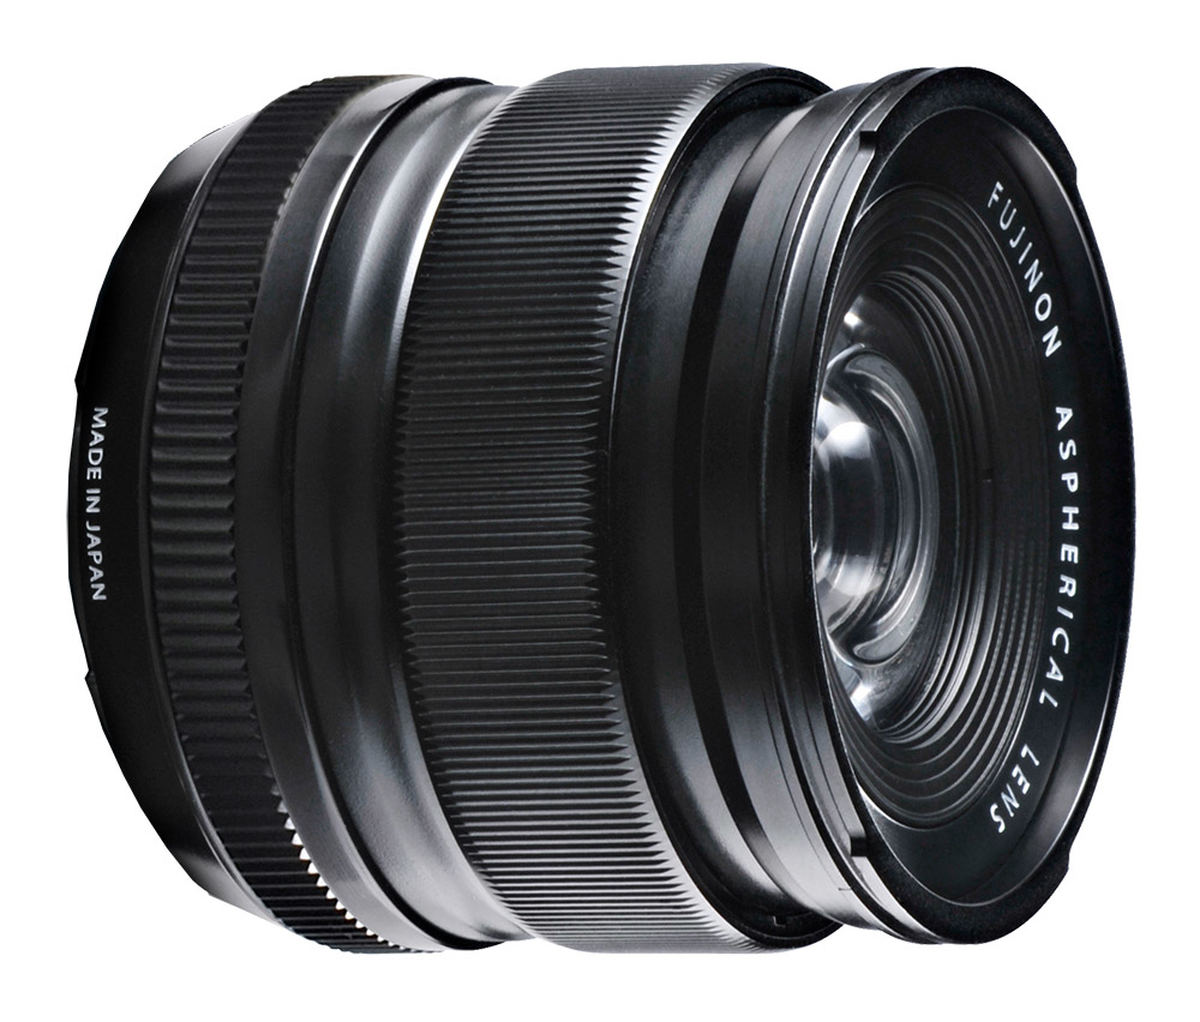 Fujifilm XF 14mm f/2 8 R : Specifications and Opinions